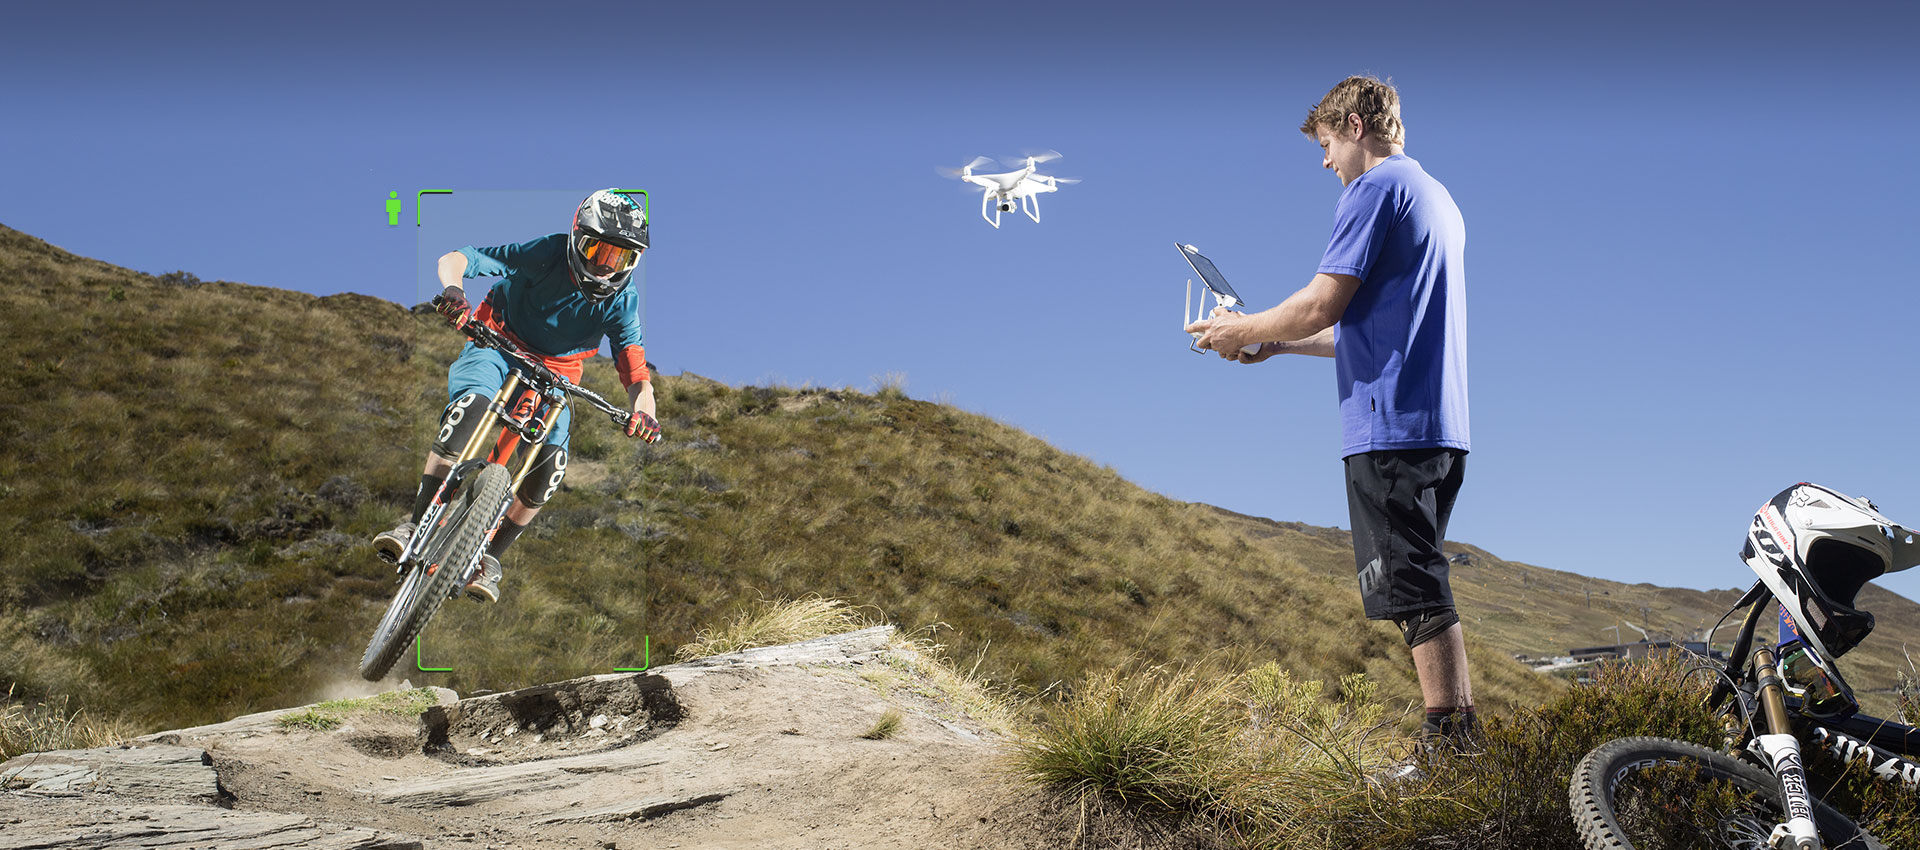 Mit intelligenten Features. (Foto: DJI)